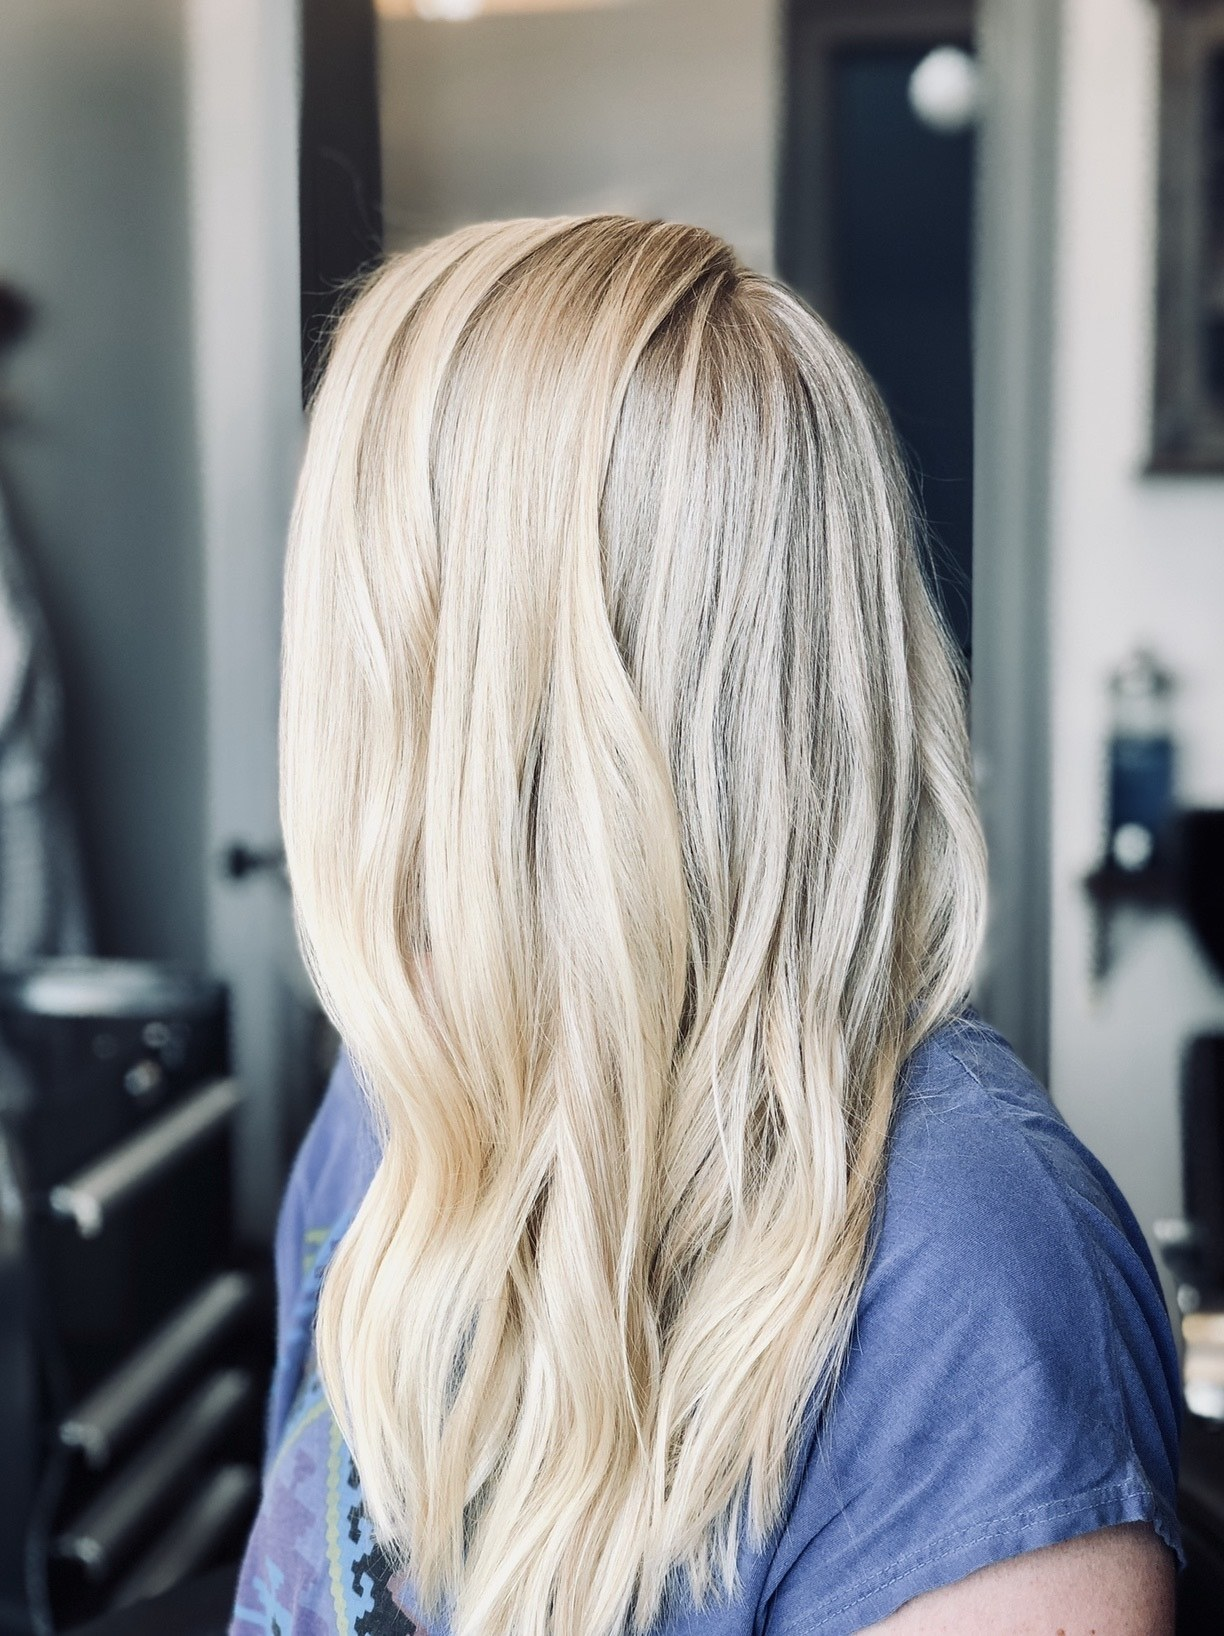 Buttercream blonde hair color